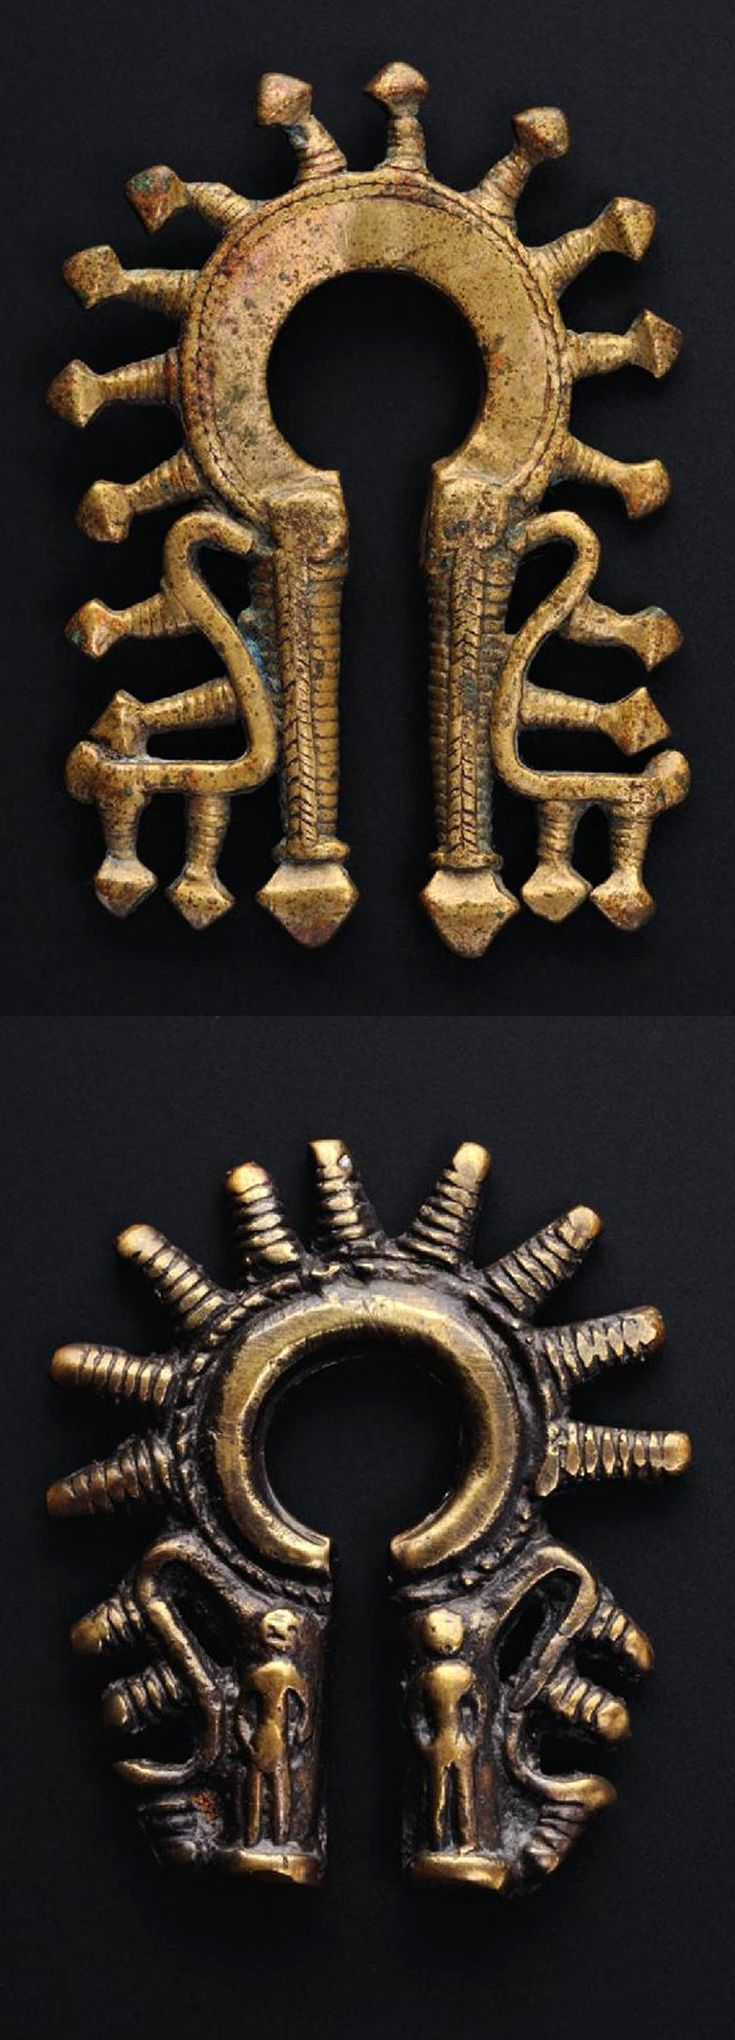 Indonesia ~ Batak Toba | Omega form earrings ~ 'duri-duri' | Brass (left), Bronze (right) | Usually worn as a single earring but sometimes in pairs, they are the only gold and silver jewellery made by the Batak Toba, who traditionally prefer copper alloys. ||| Source; Ethnic Jewellery from Indonesia: Continuity and Evolution. Bruce W Carpenter. Pg 64